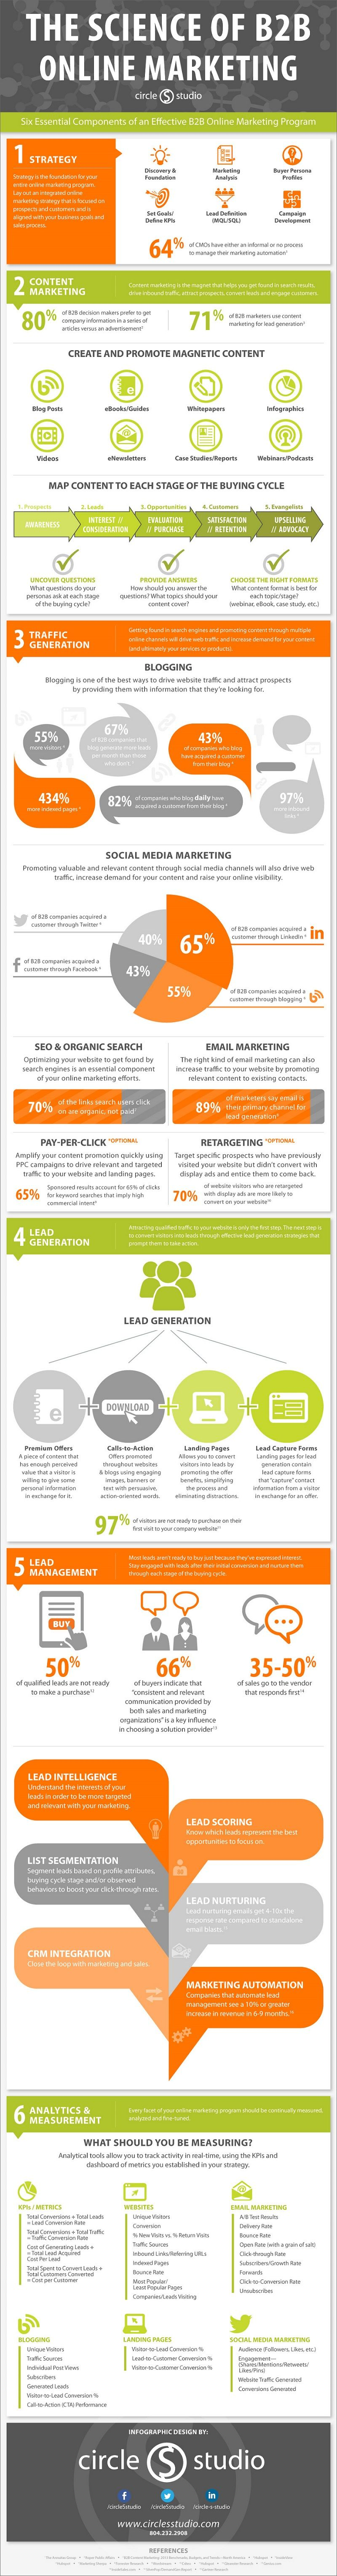 The science of b2b online marketing infographic fei digital the science of b2b online marketing infographic publicscrutiny Choice Image